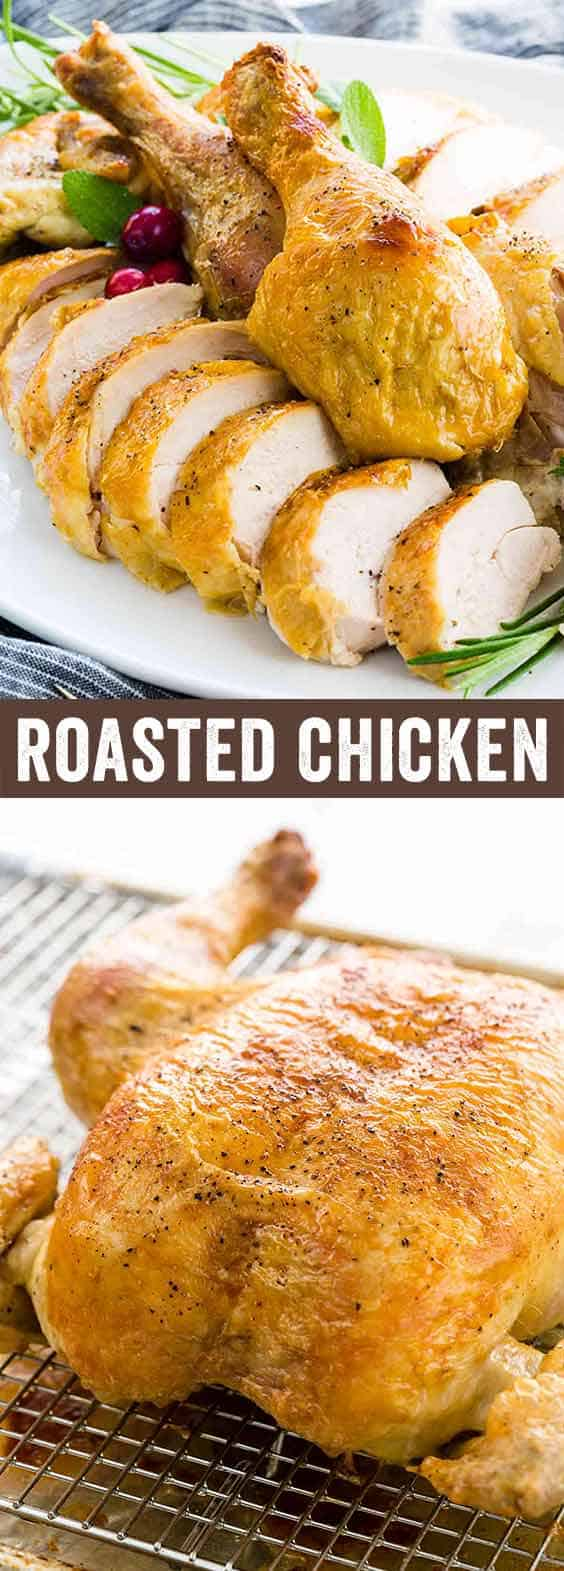 Dry brined with herbs, this butterflied roasted chicken is super flavorful and juicy! Using the spatchcock technique allows for even cooking in less time than a traditional roast.